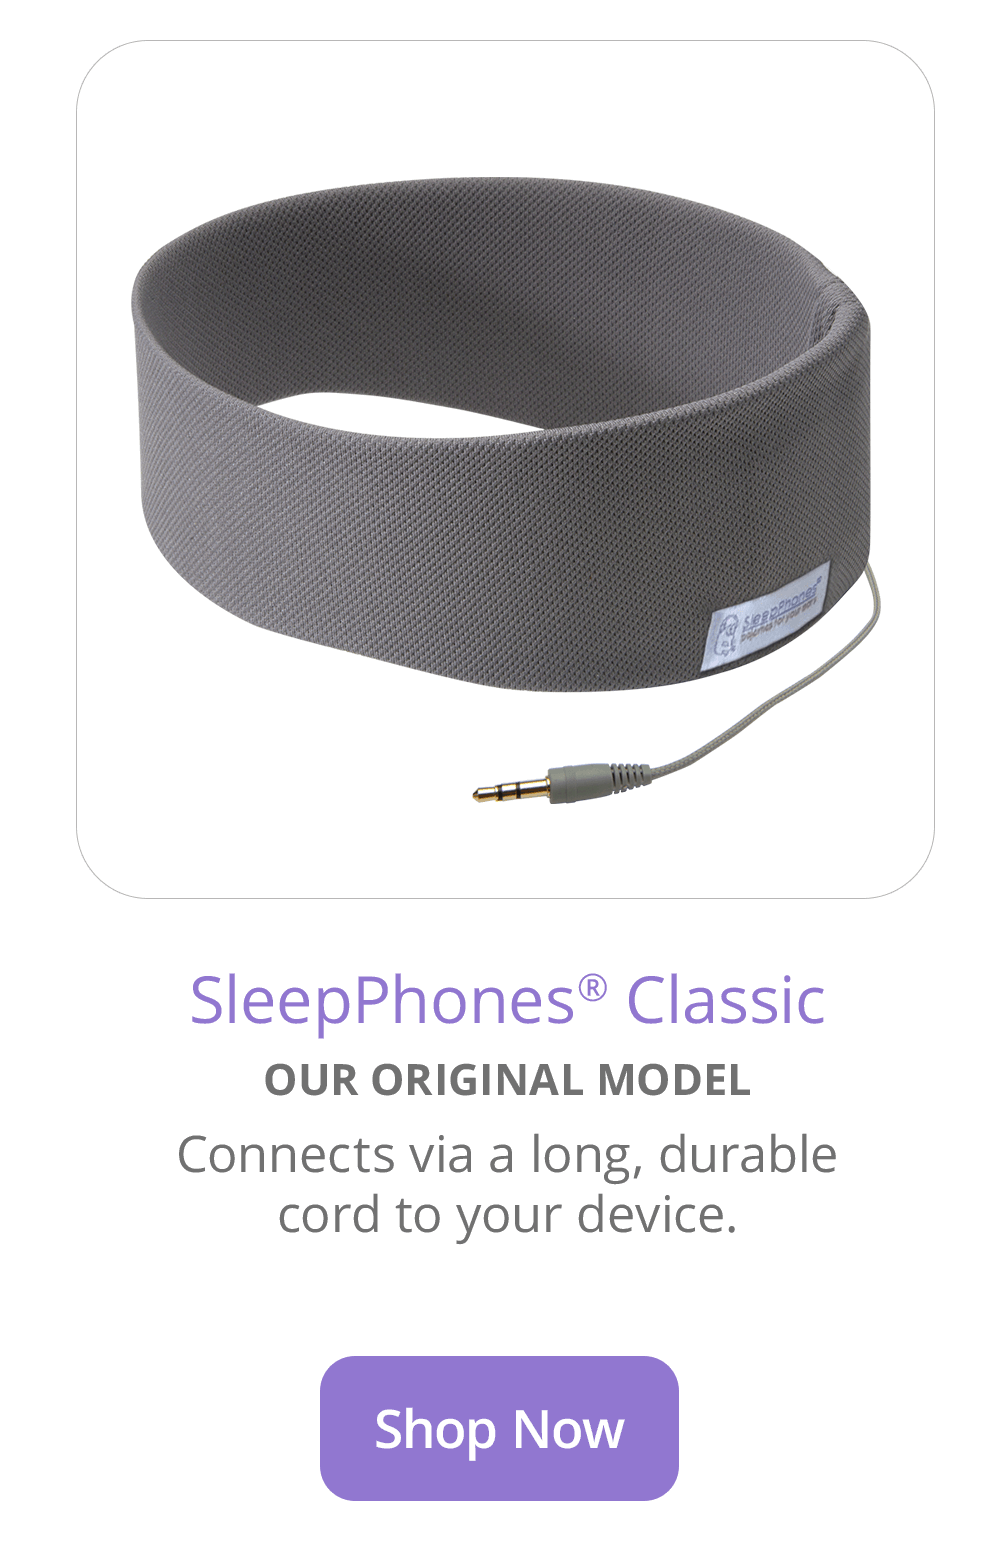 /sites/default/files/Buy-SleepPhones-Classic-Headphones-GraphiteGray-Breeze.png